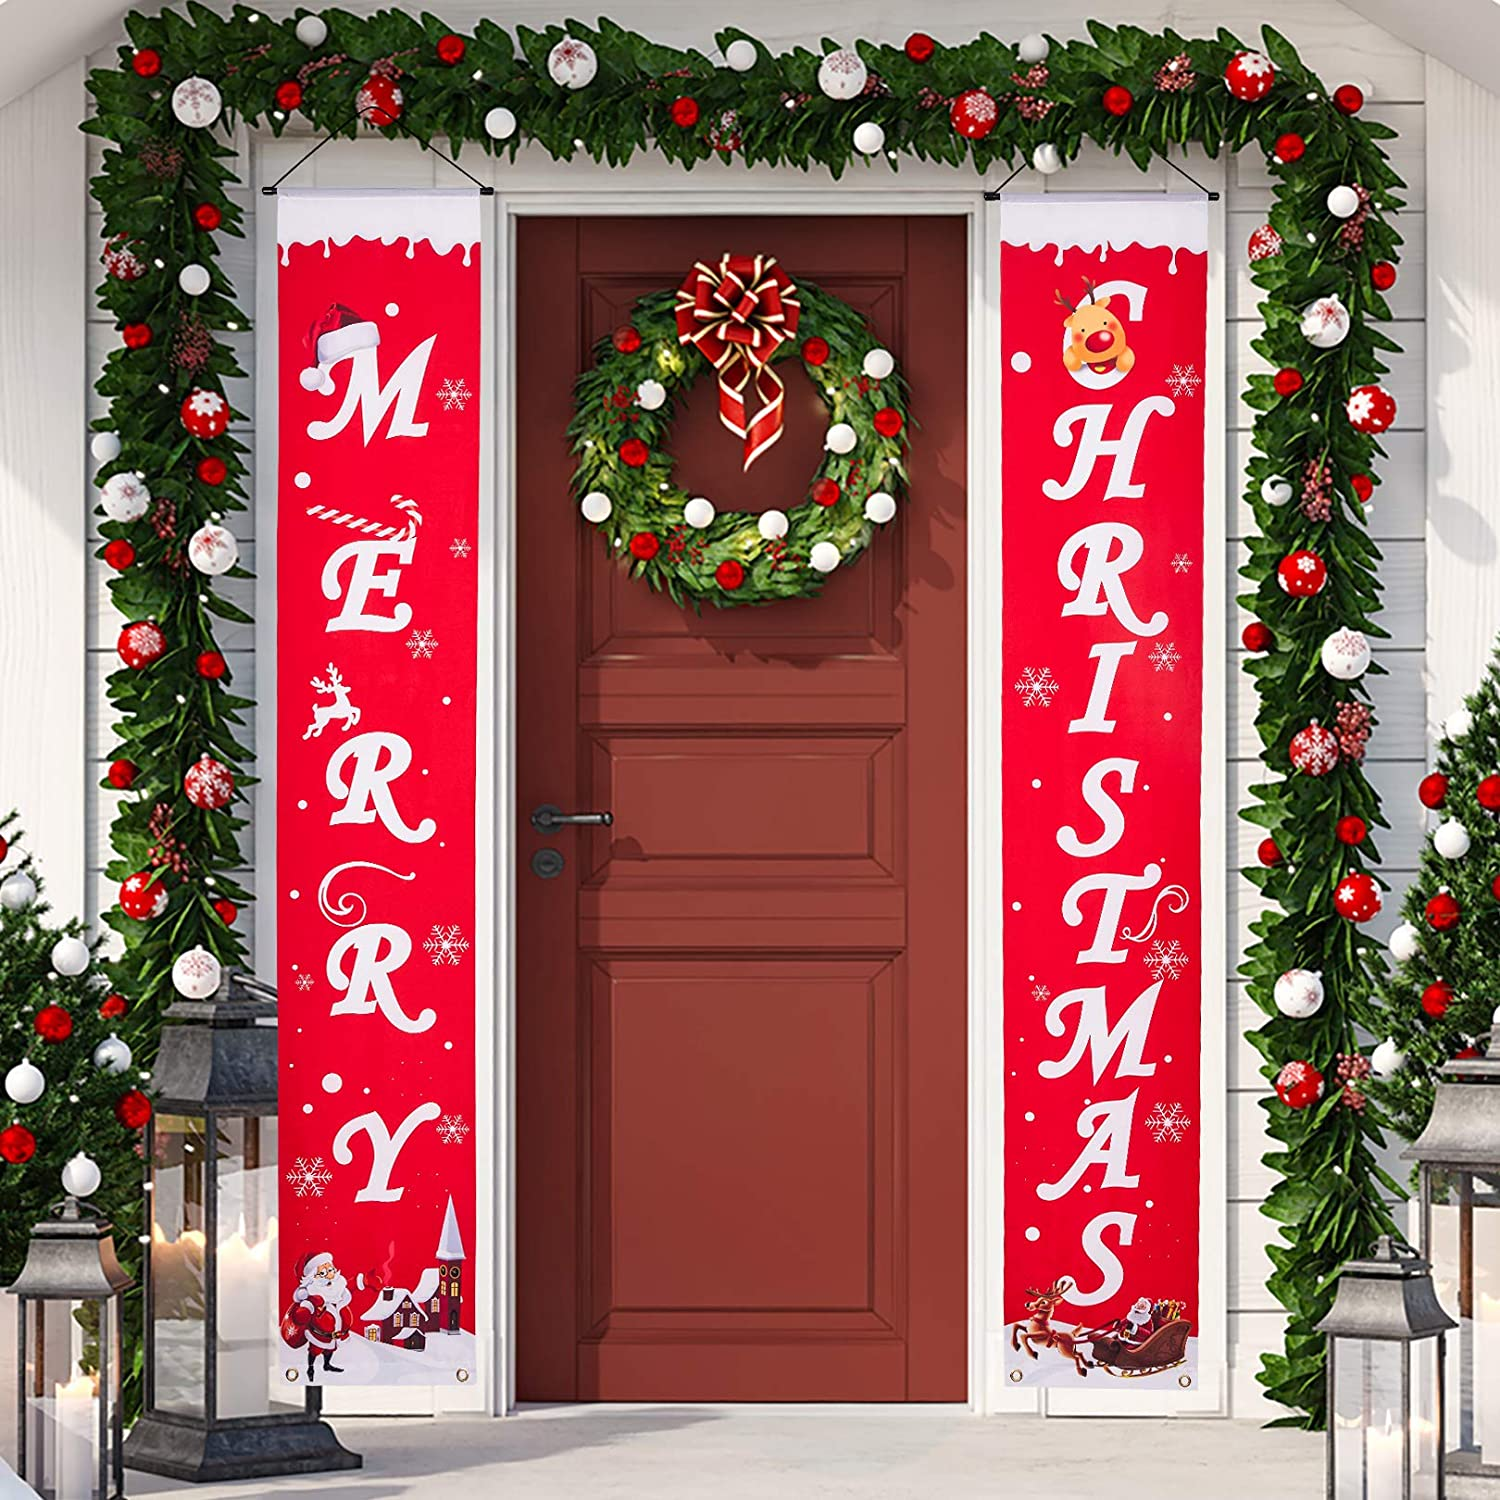 Merry Christmas Banner Christmas Porch Decorations Indoor Outdoor Christmas Decorations Hanging Merry Christmas Signs Decor for Home Wall Front Door Office Garage Holiday Party Supplies